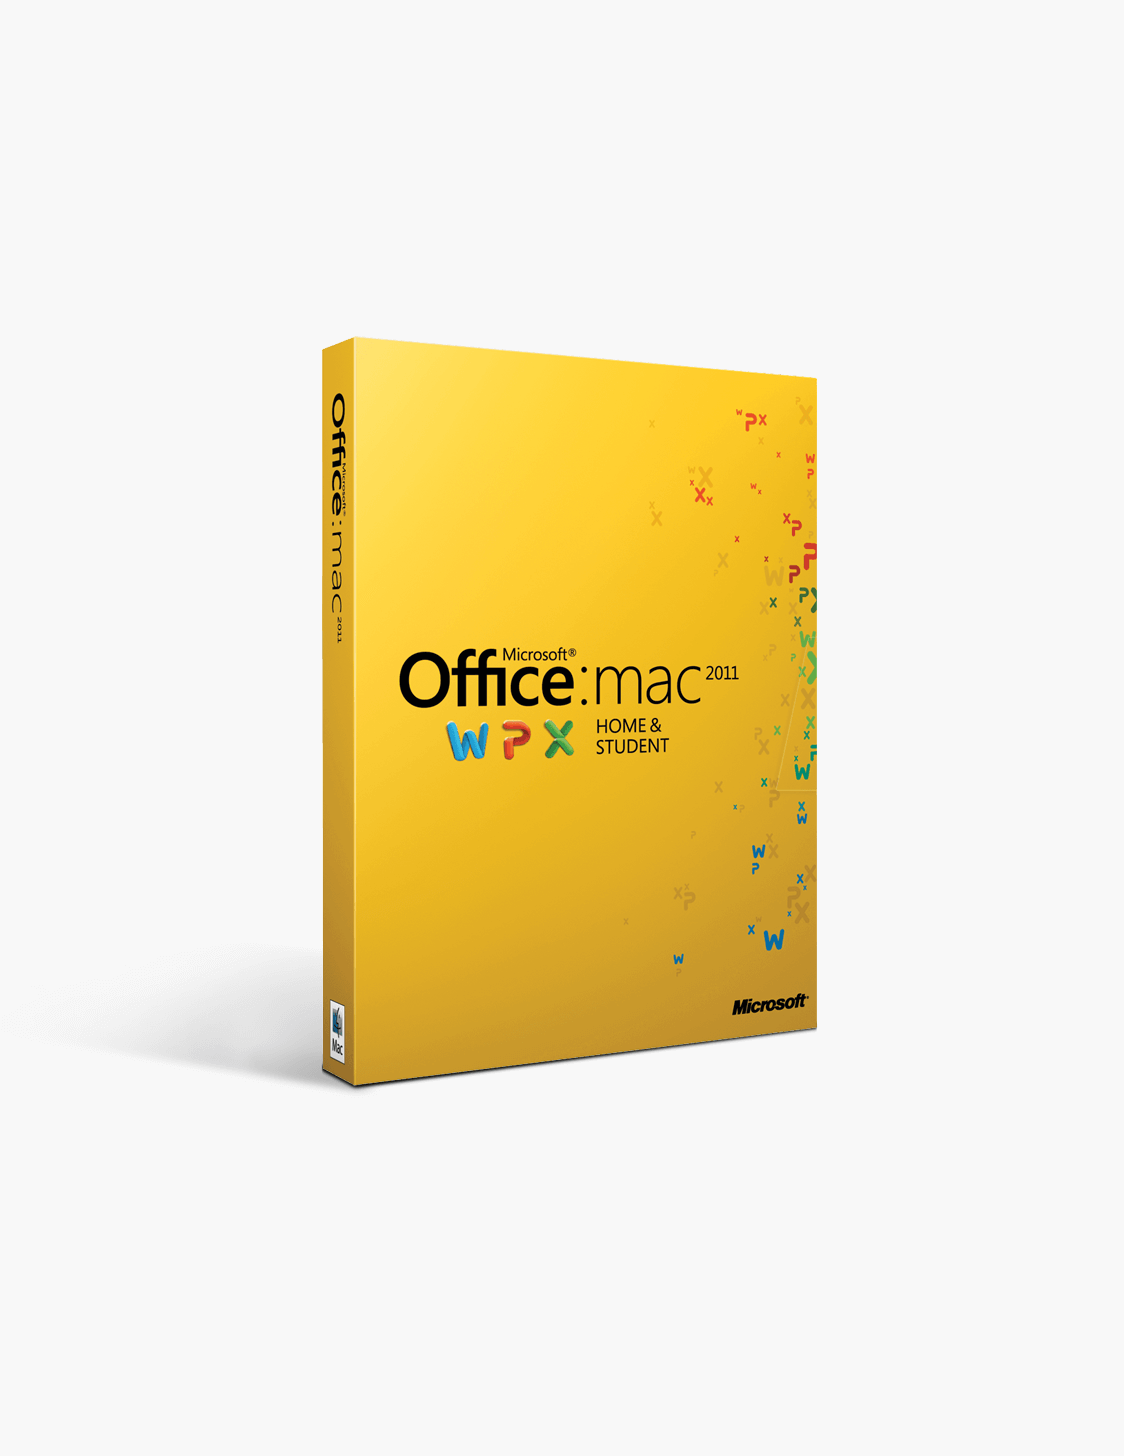 Microsoft office 2011 mac home & student edition key code | ebay.